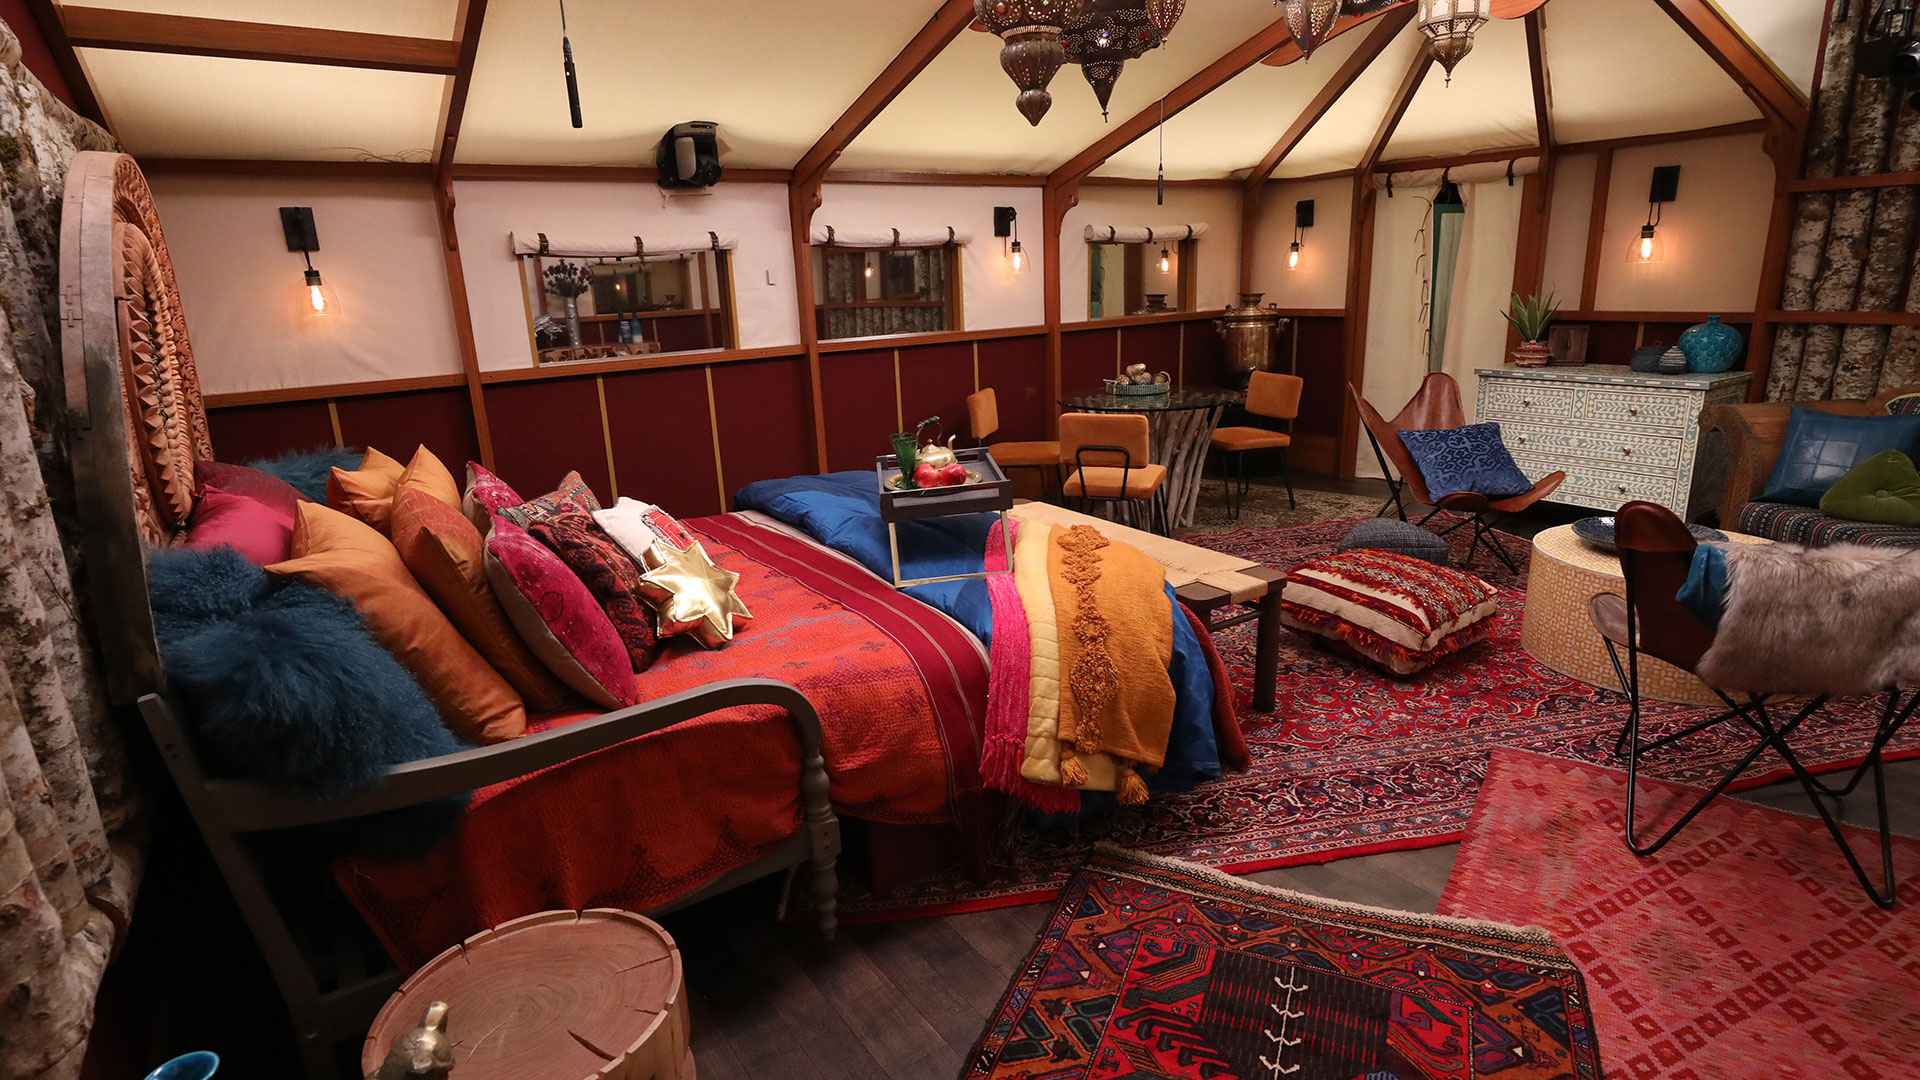 The HOH room is the definition of glamping